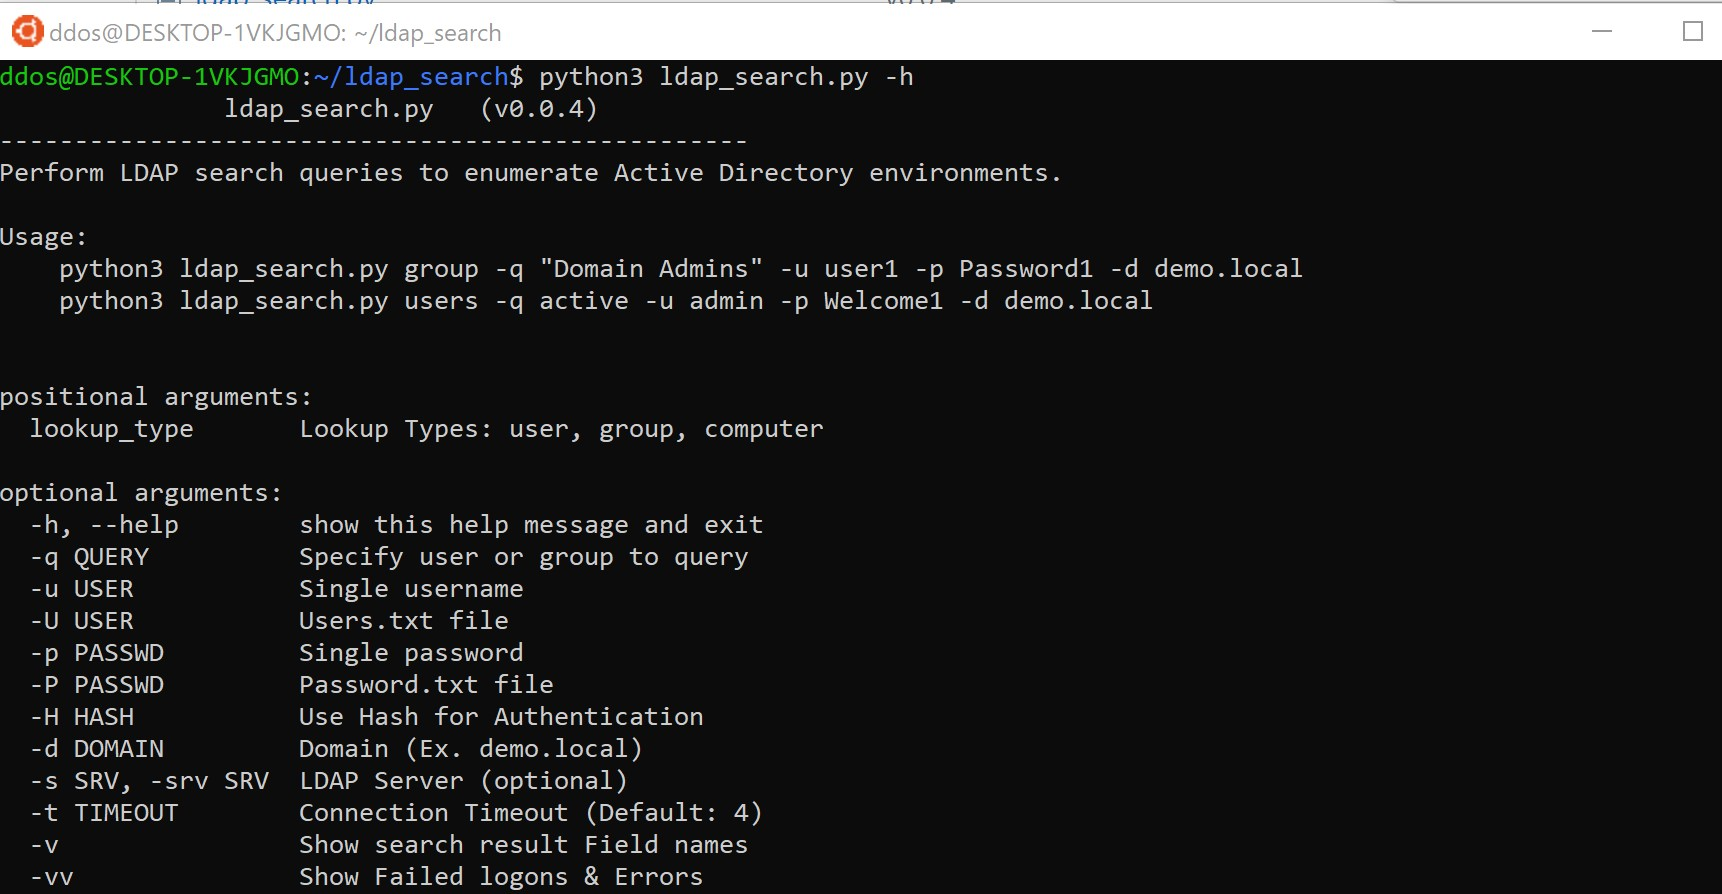 ldap_search: perform LDAP queries and enumerate users